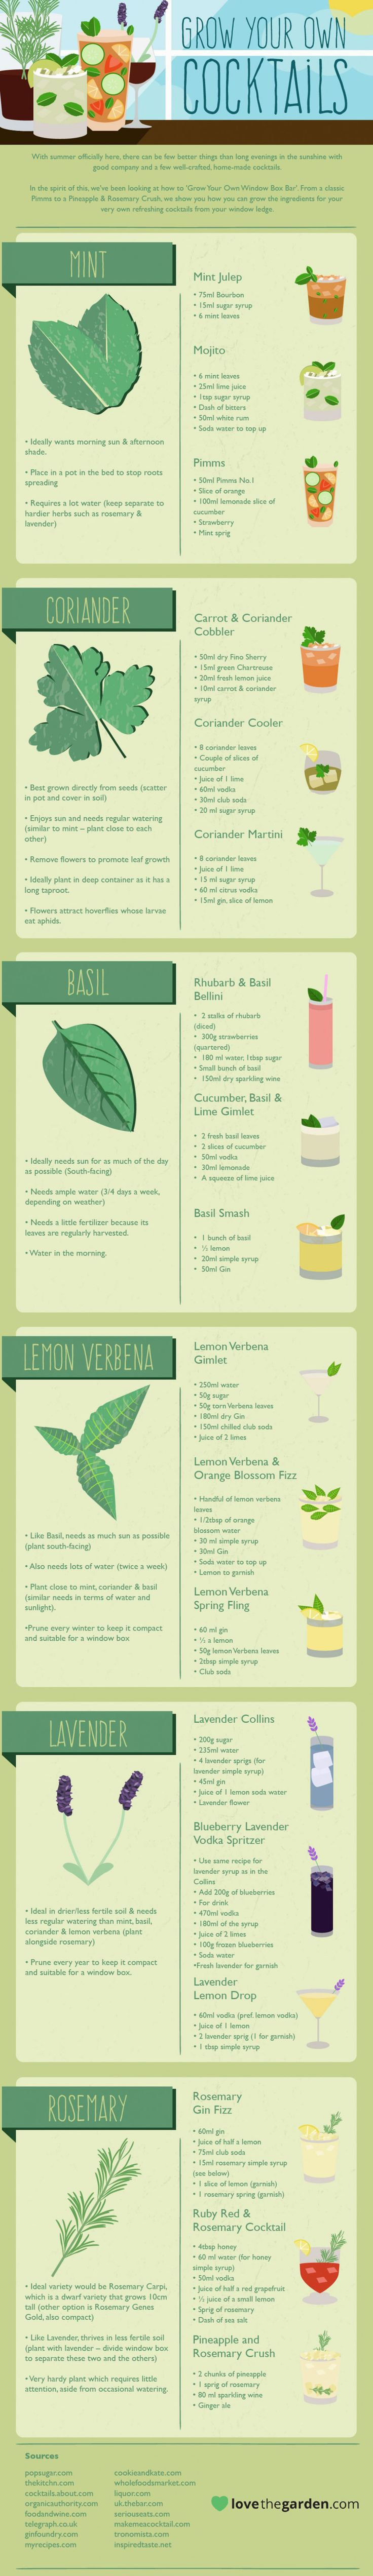 infographic, grow your own cocktail, cocktails, drink recipes, gardening, recipes, garden recipes, herbal cocktails, basil cocktails, lavender cocktails, cocktail recipes, http://inhabitat.com/grow-your-own-cocktails-drink-recipes-from-the-garden/?utm_content=bufferdd31e&utm_medium=social&utm_source=pinterest.com&utm_campaign=buffer